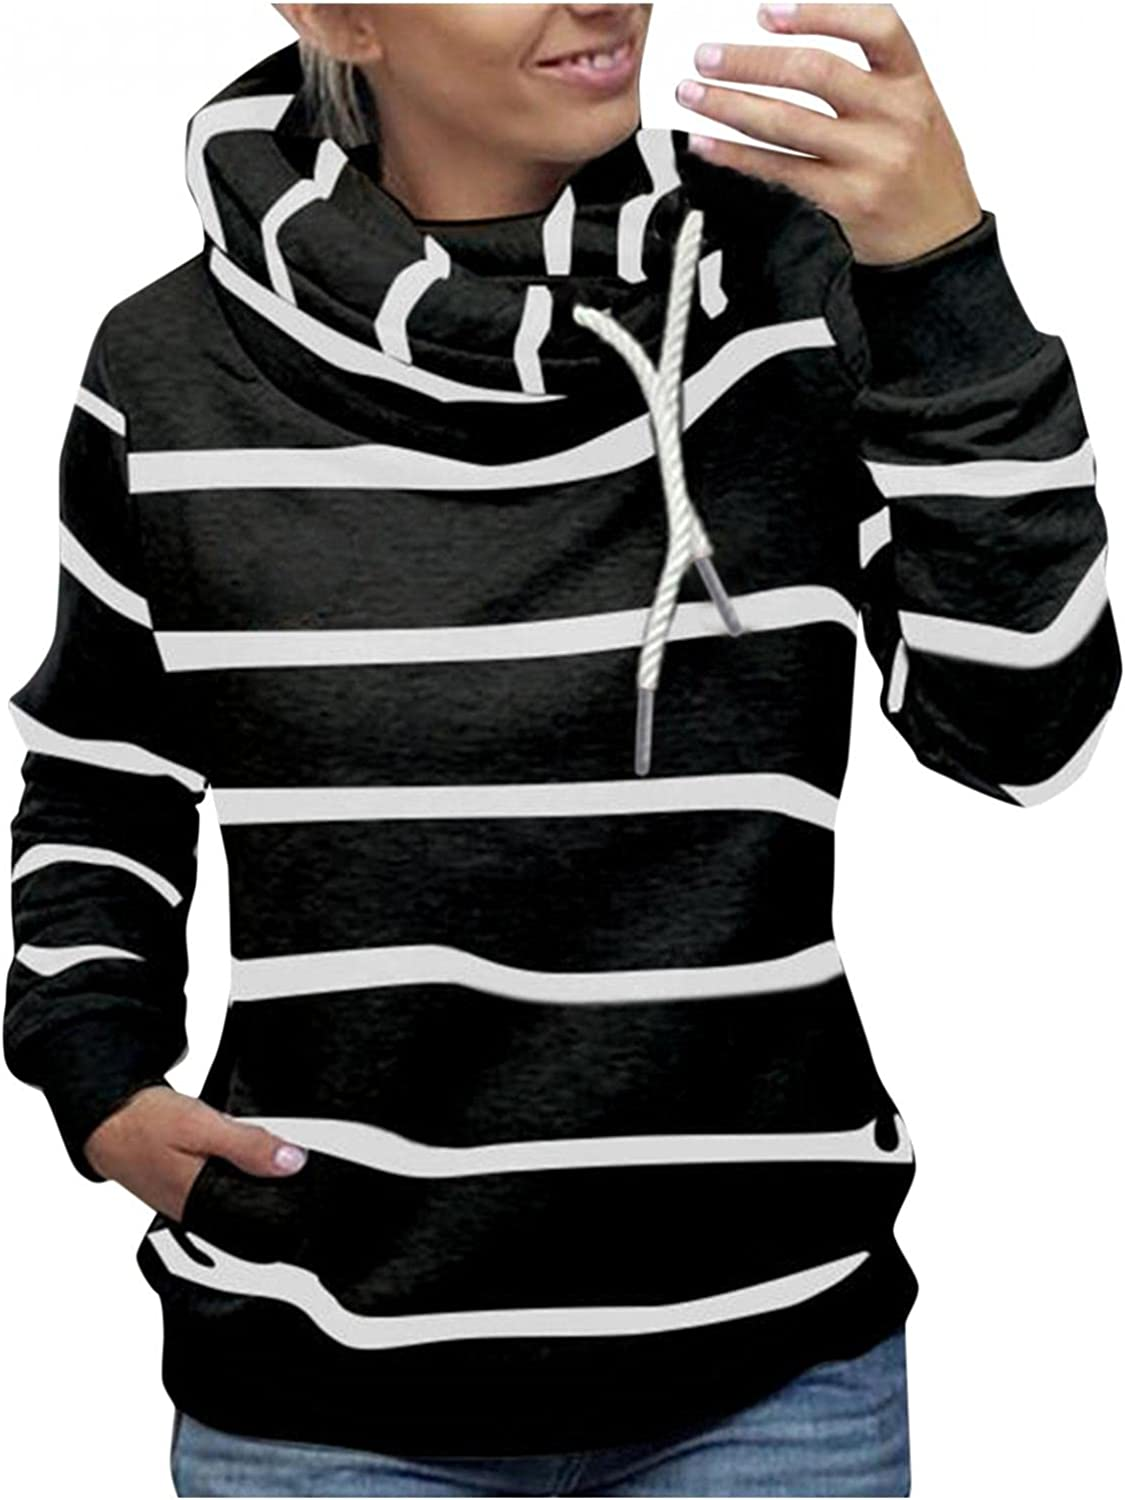 Gibobby Hooded Sweatshirts for Women Casual Turtleneck Long Sleeve Pullover Sweaters Stripe Hoodies Drawstring Jackets